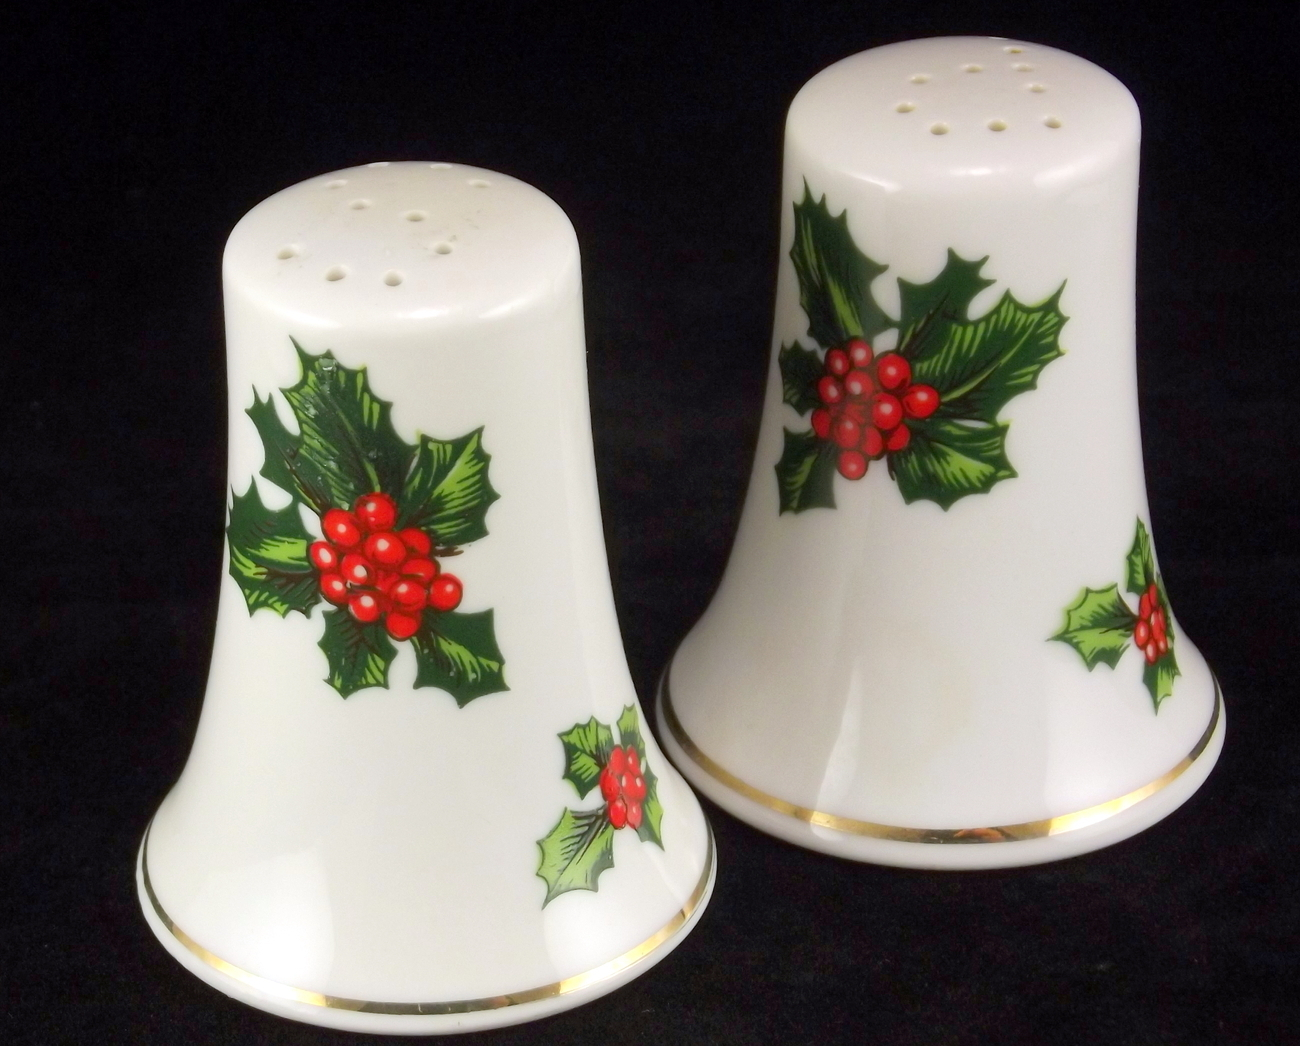 Lefton Holly porcelain Christmas holiday salt and pepper set 7955